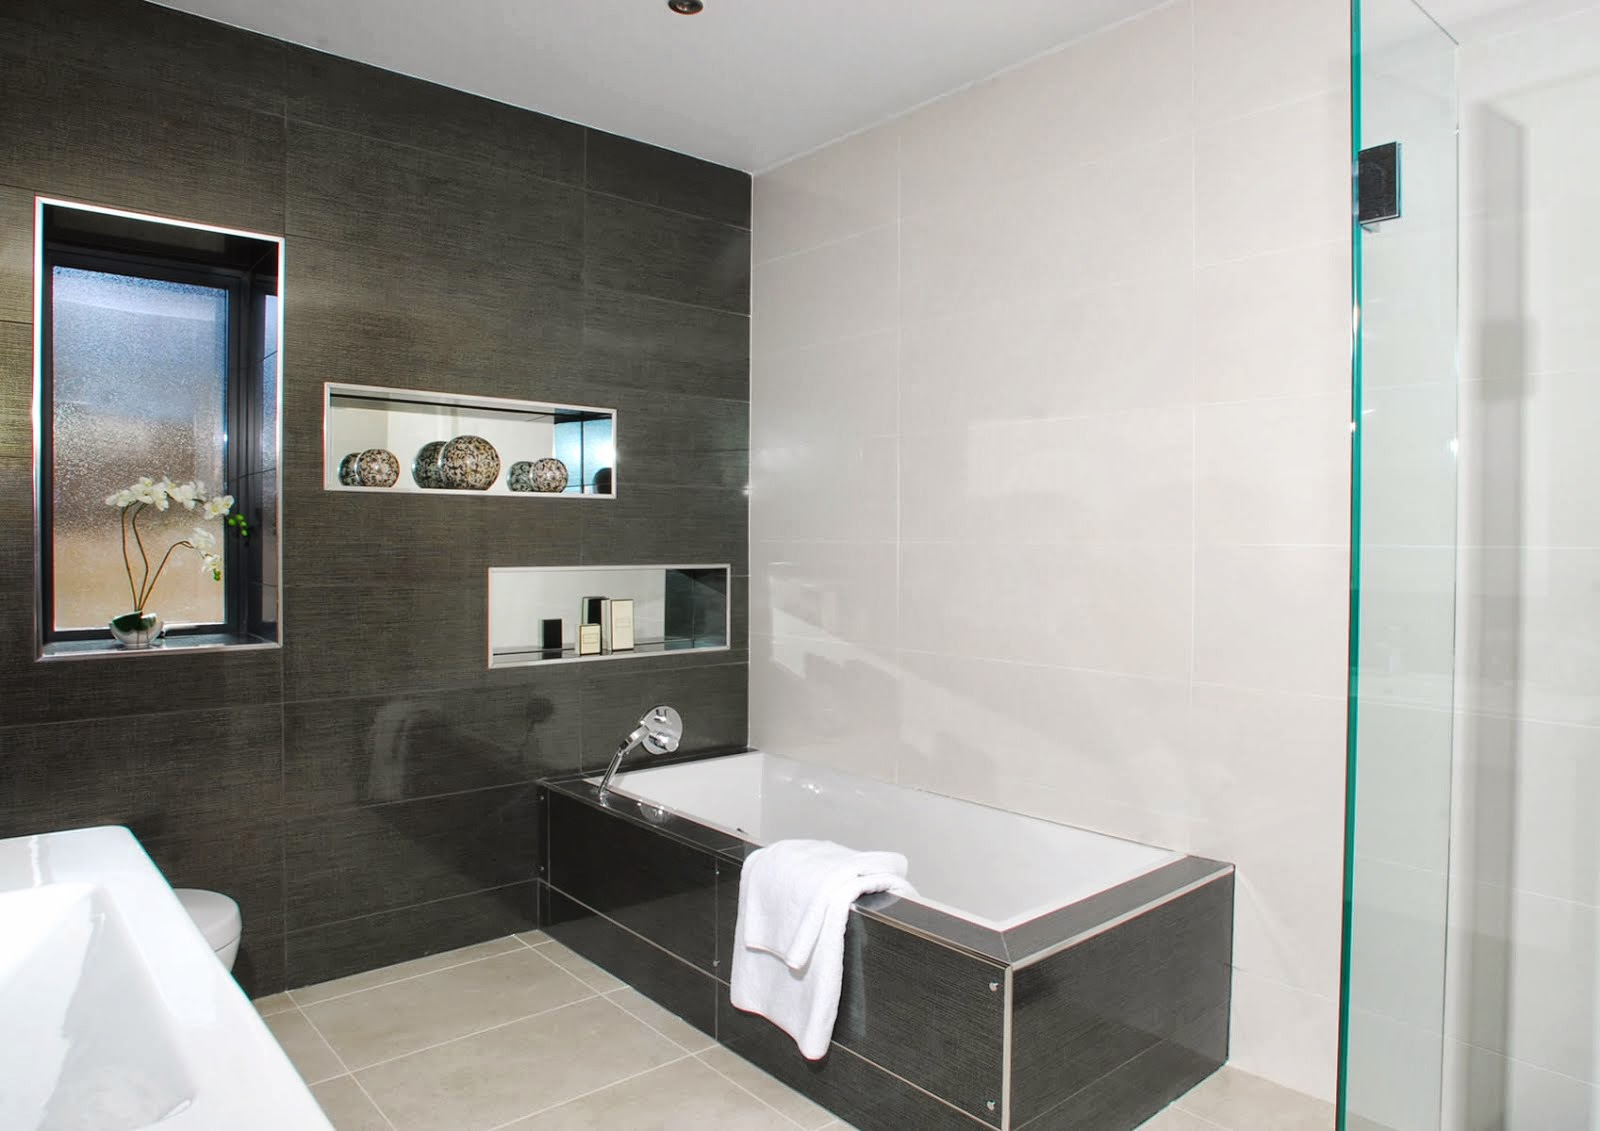 Bathroom design ideas uk for Bathroom styles and designs